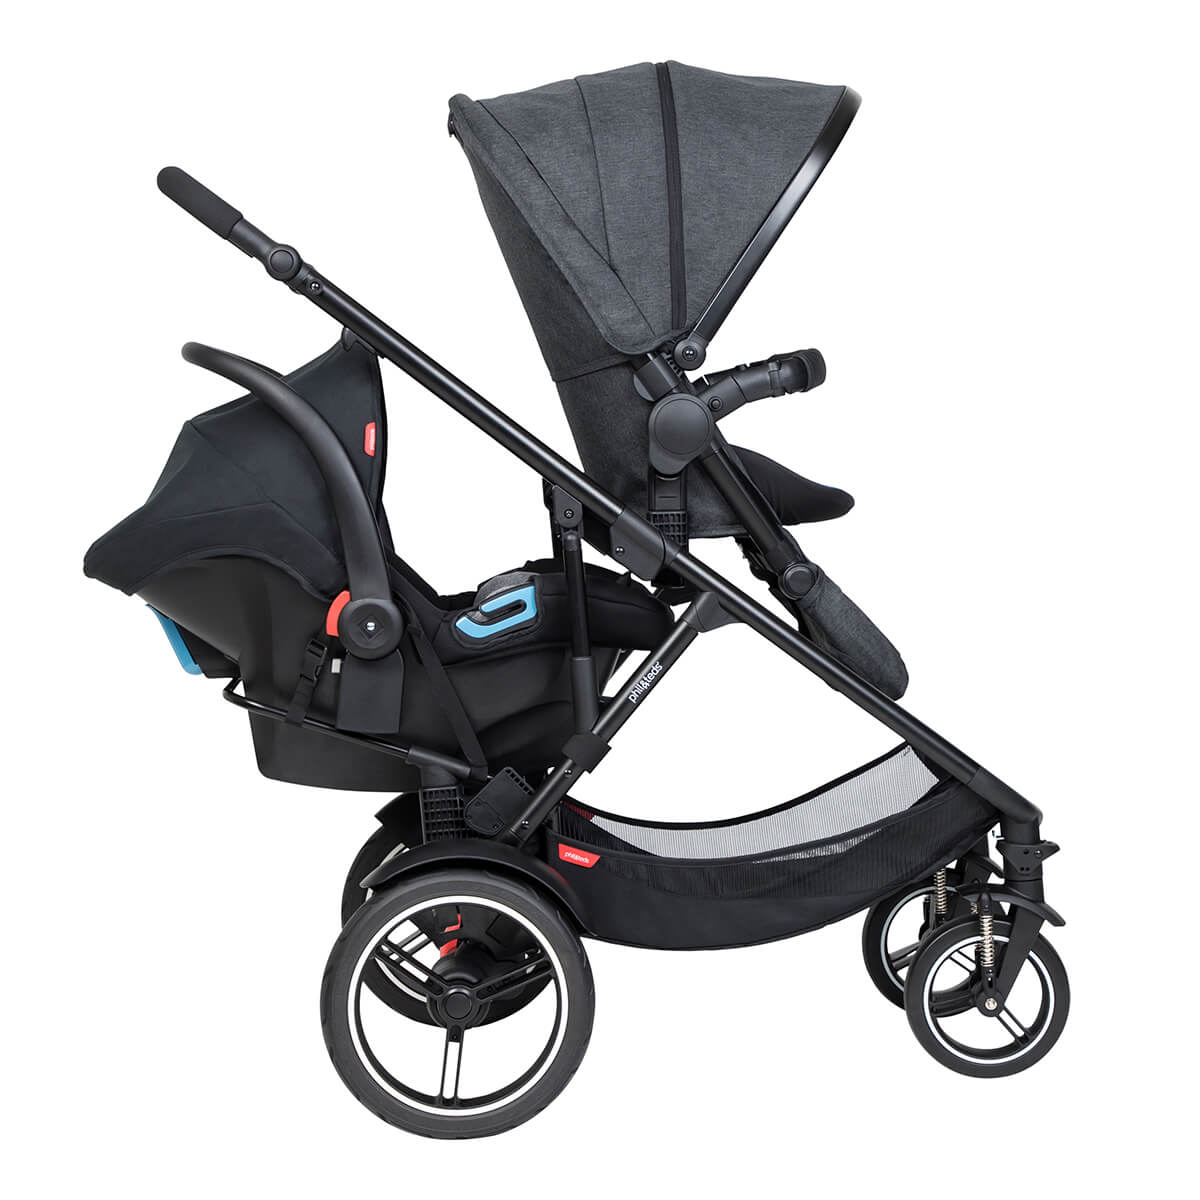 https://cdn.accentuate.io/4509529309272/19272668282968/philteds-voyager-buggy-in-forward-facing-mode-with-travel-system-in-the-rear-v1626484659210.jpg?1200x1200